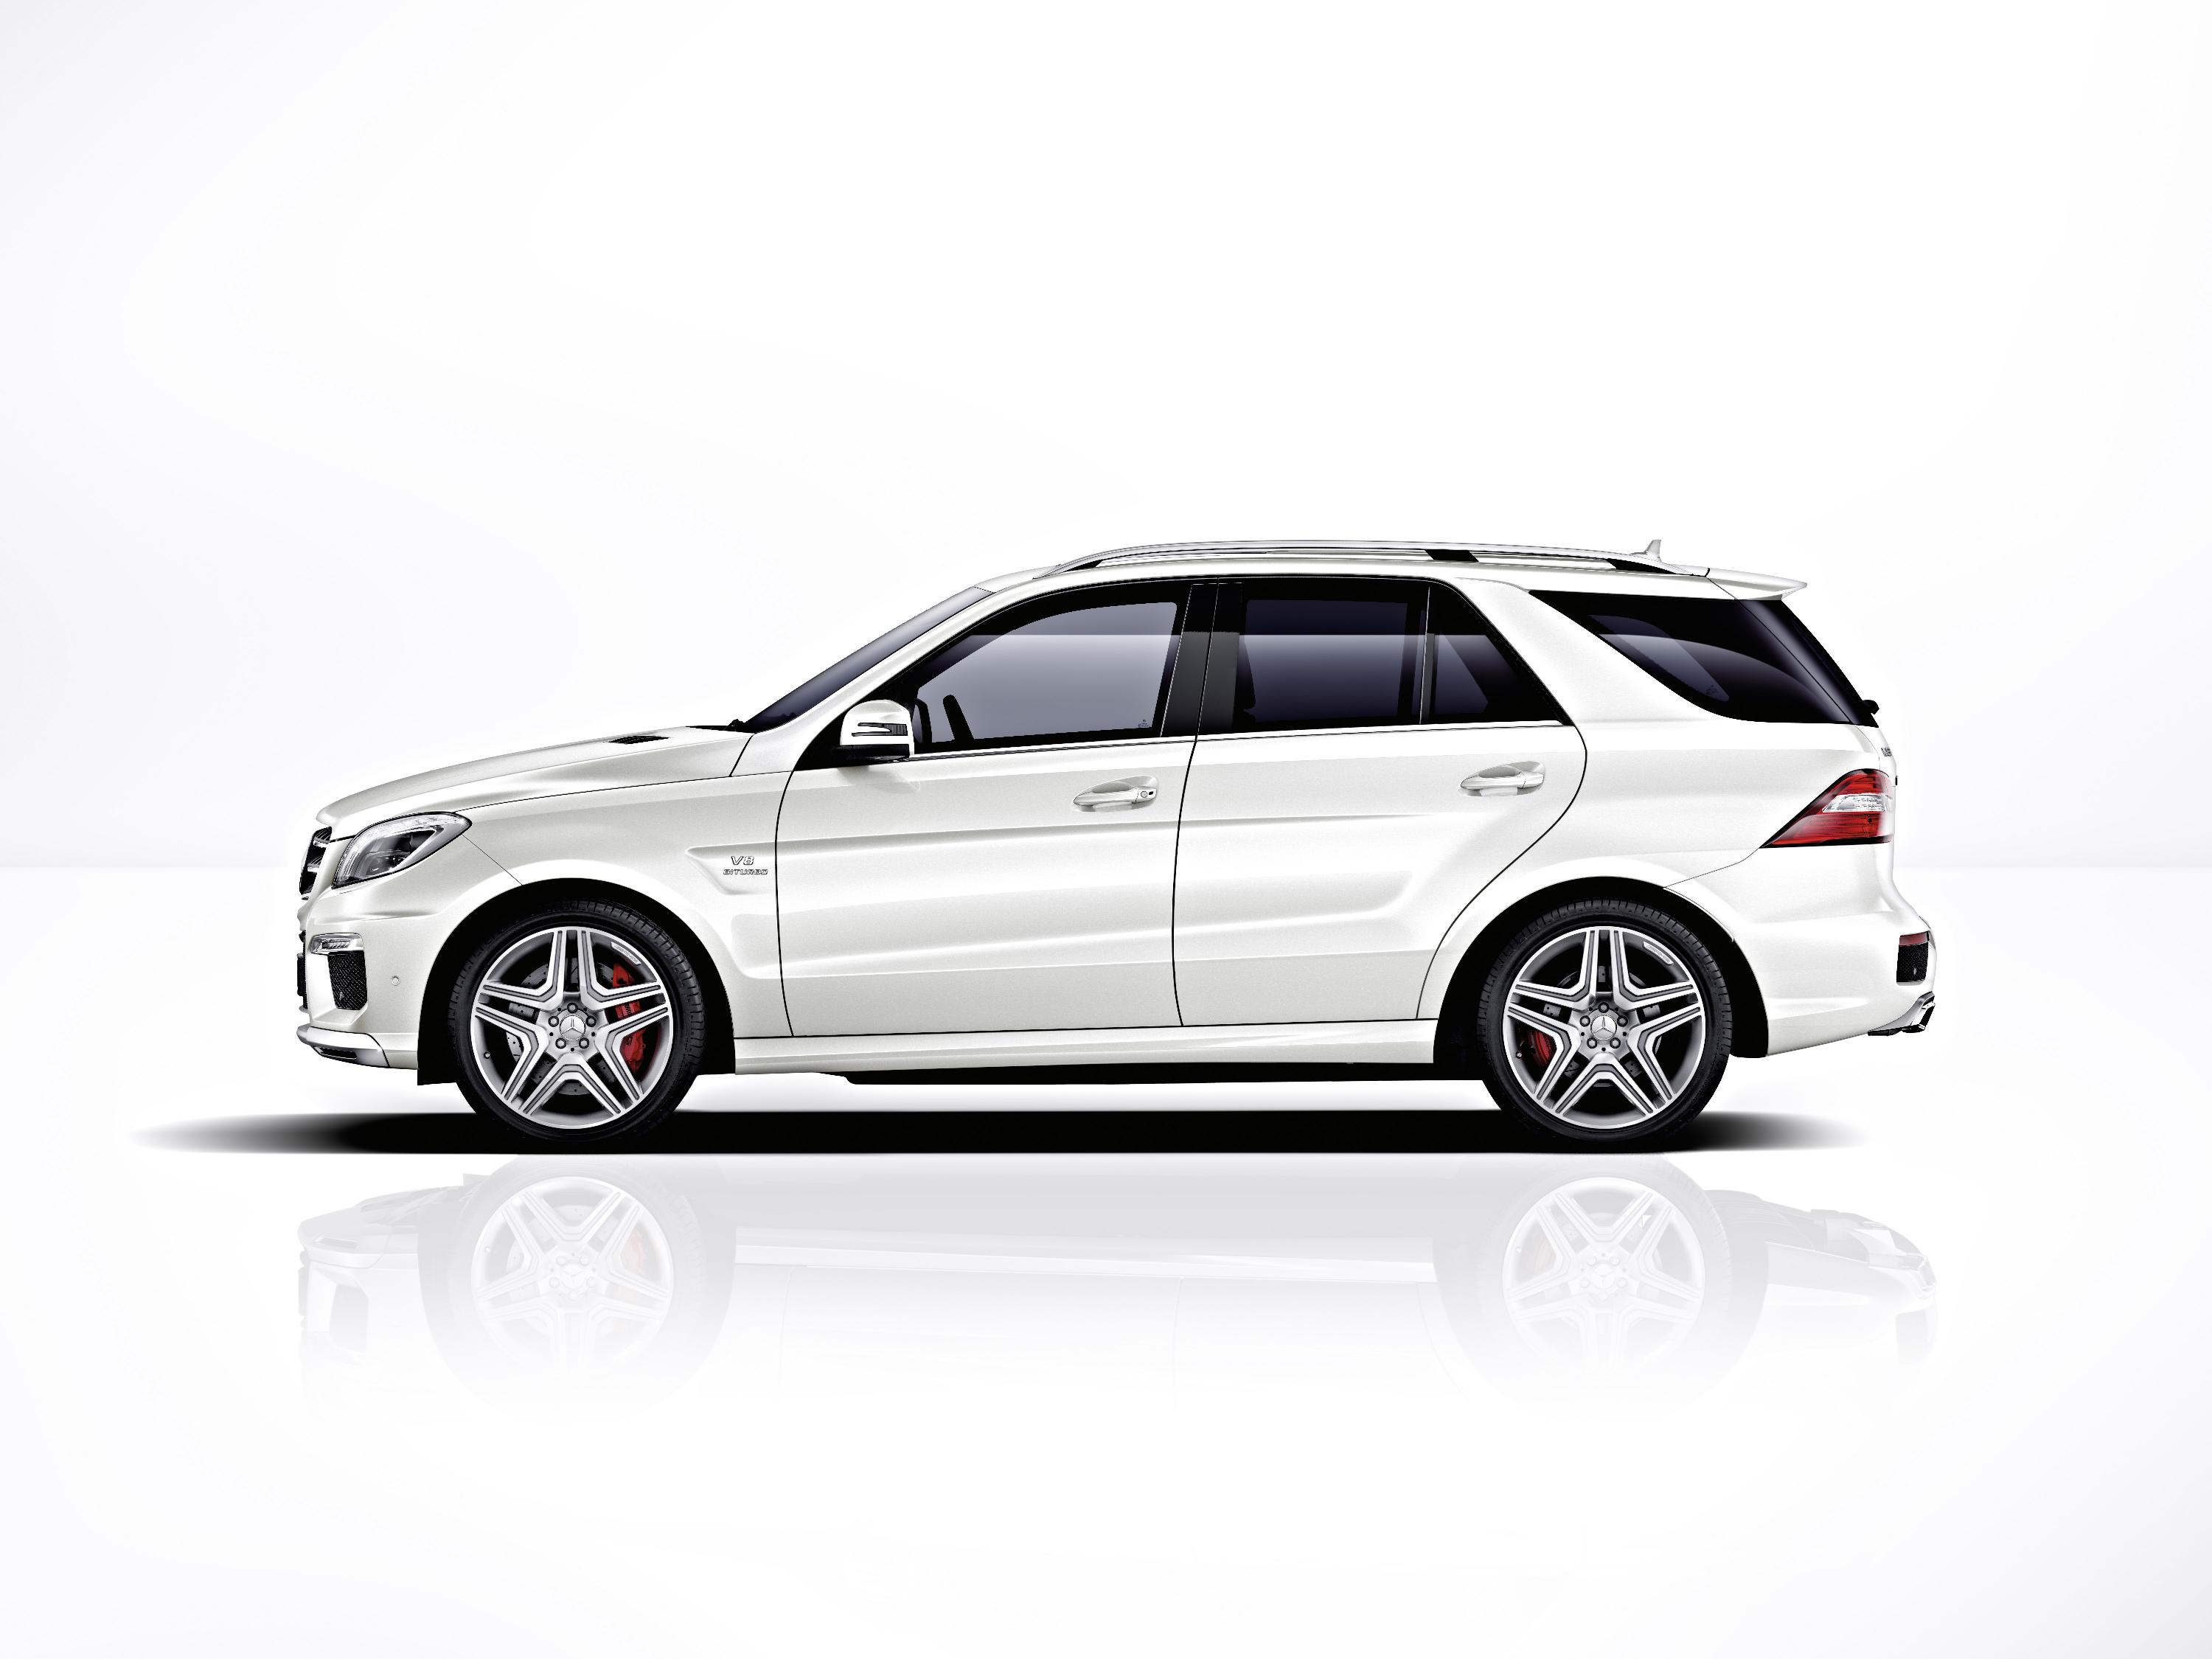 2012 mercedes ml 63 amg price 108 885 for Mercedes benz ml price